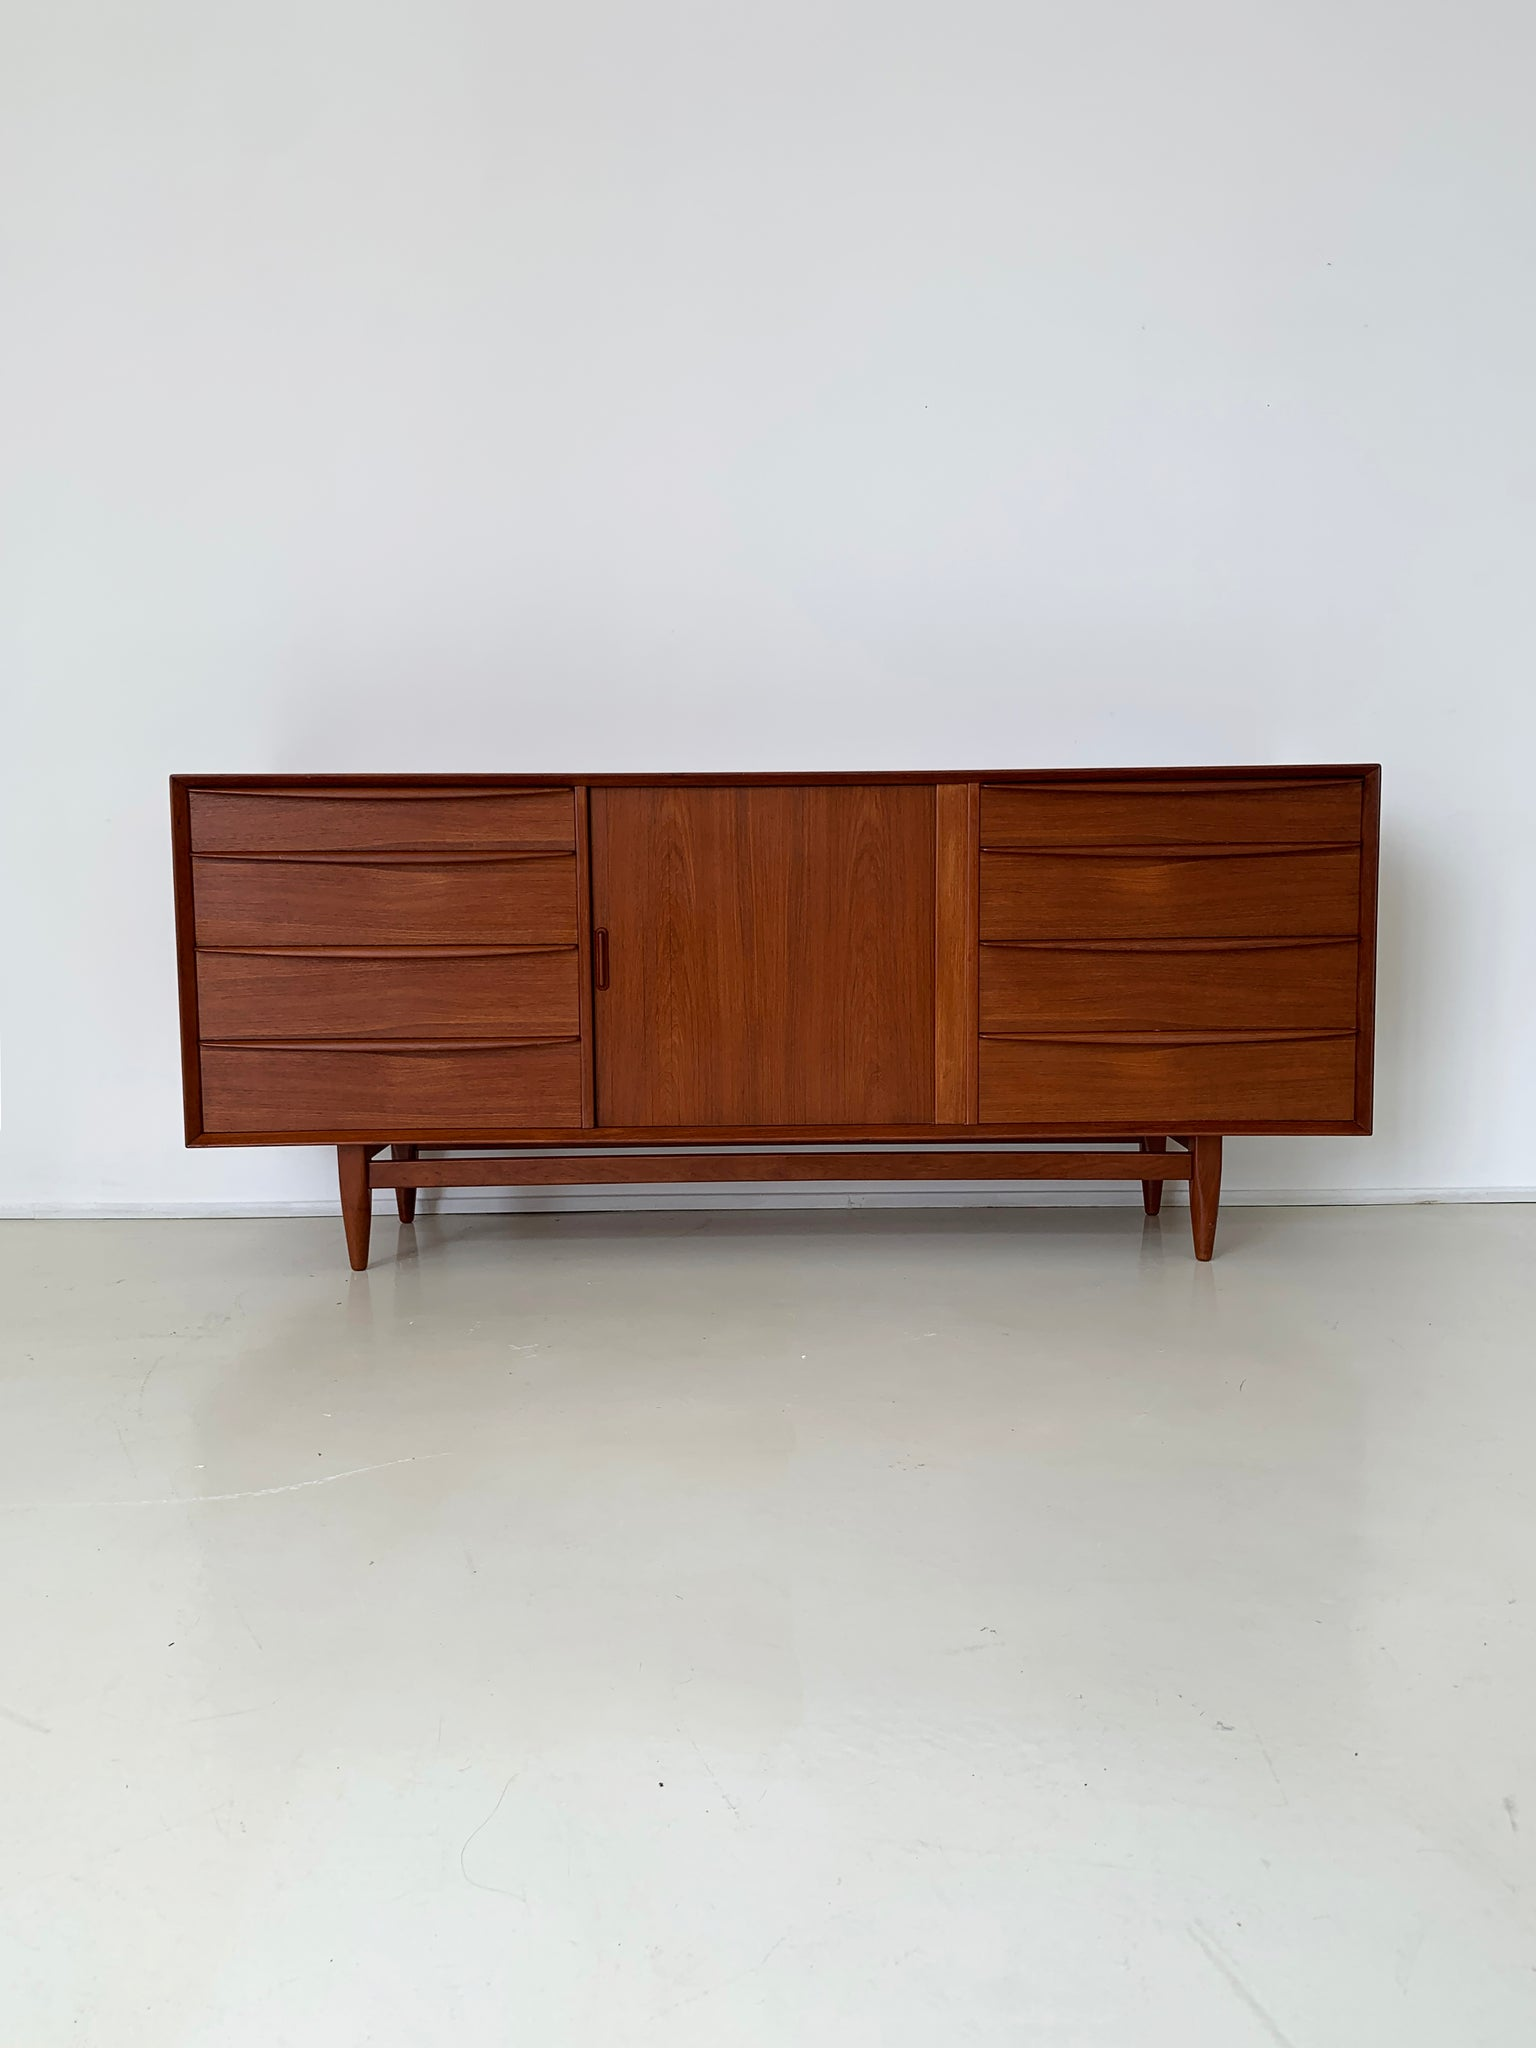 Danish Teak Mid Century Credenza by Svend Aage Madsen for Falster